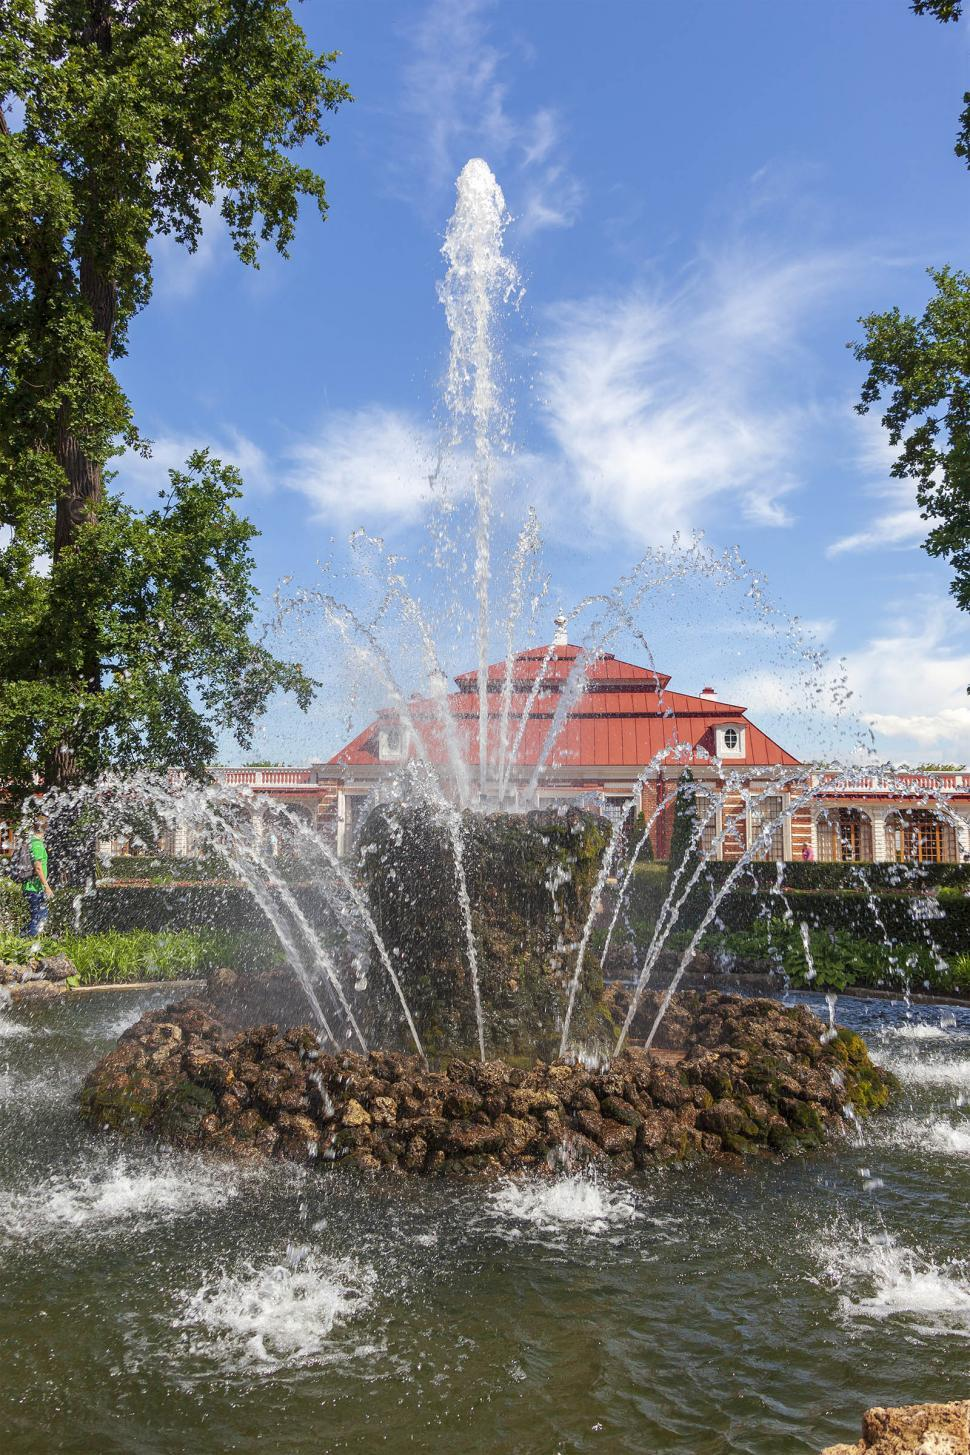 Download Free Stock Photo of Fountain with building in the background